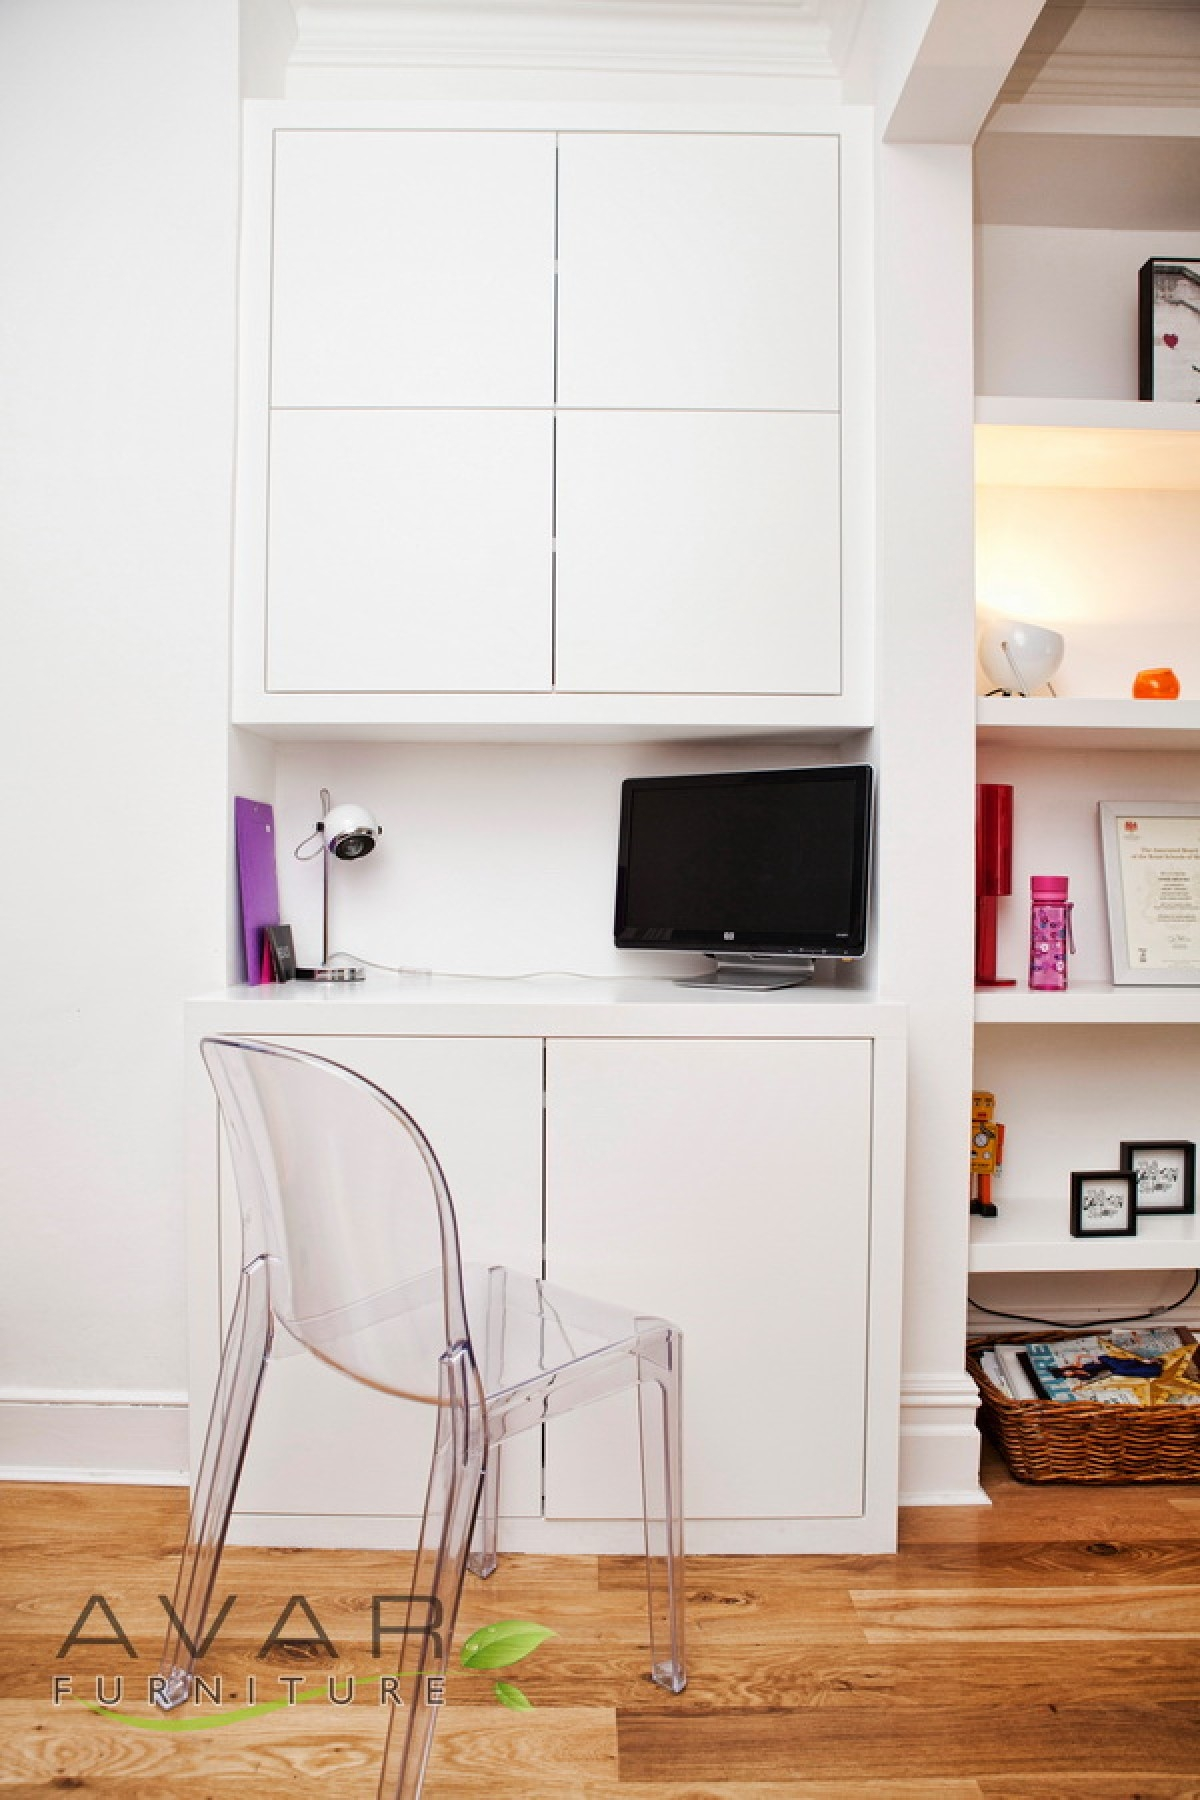 Alcove Units Ideas Gallery 2 North London Uk Avar Furniture Intended For Alcove Wardrobes Designs (View 4 of 15)